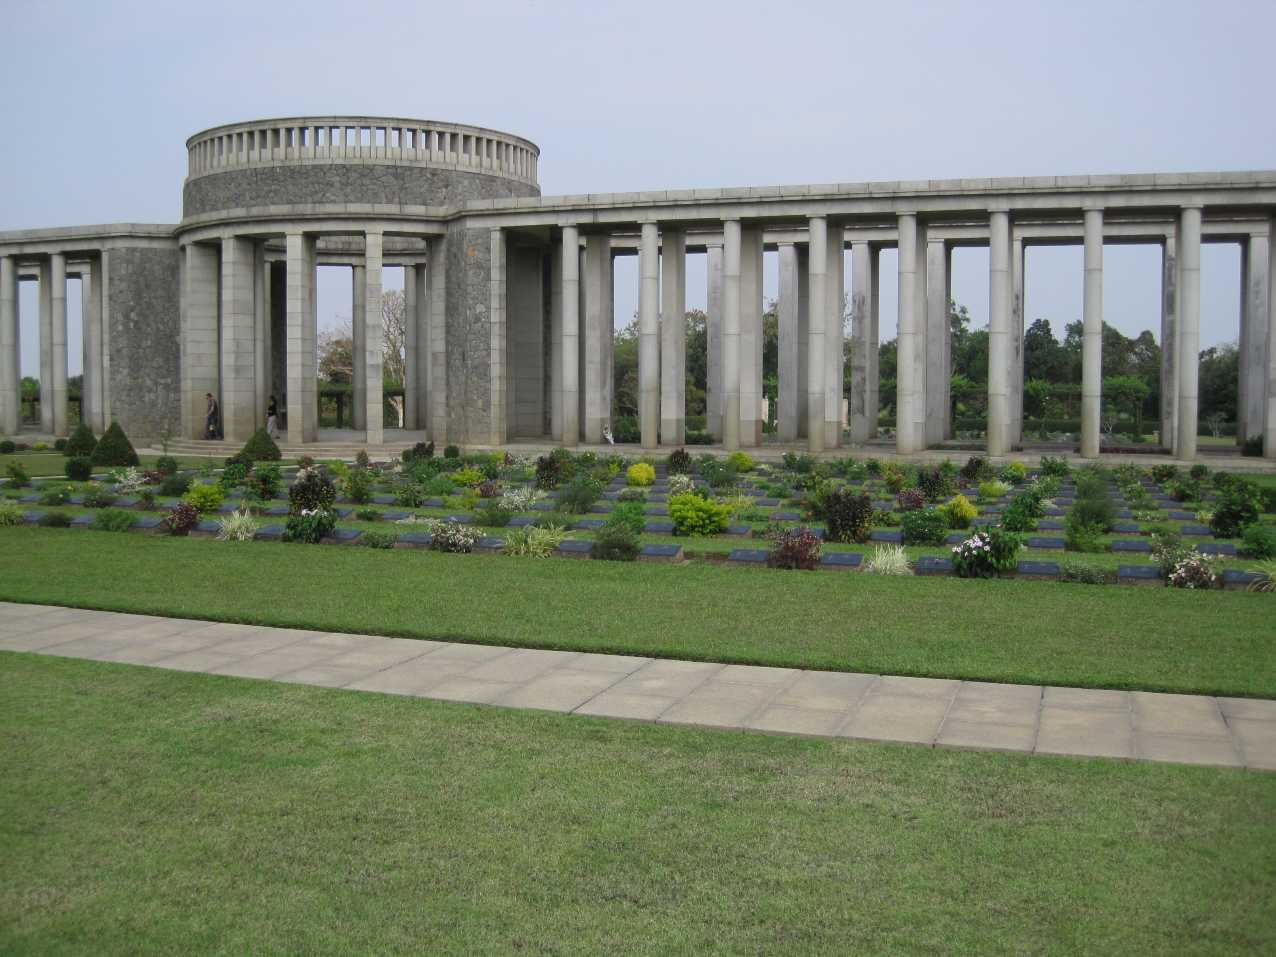 RANGOON MEMORIAL - CWGC